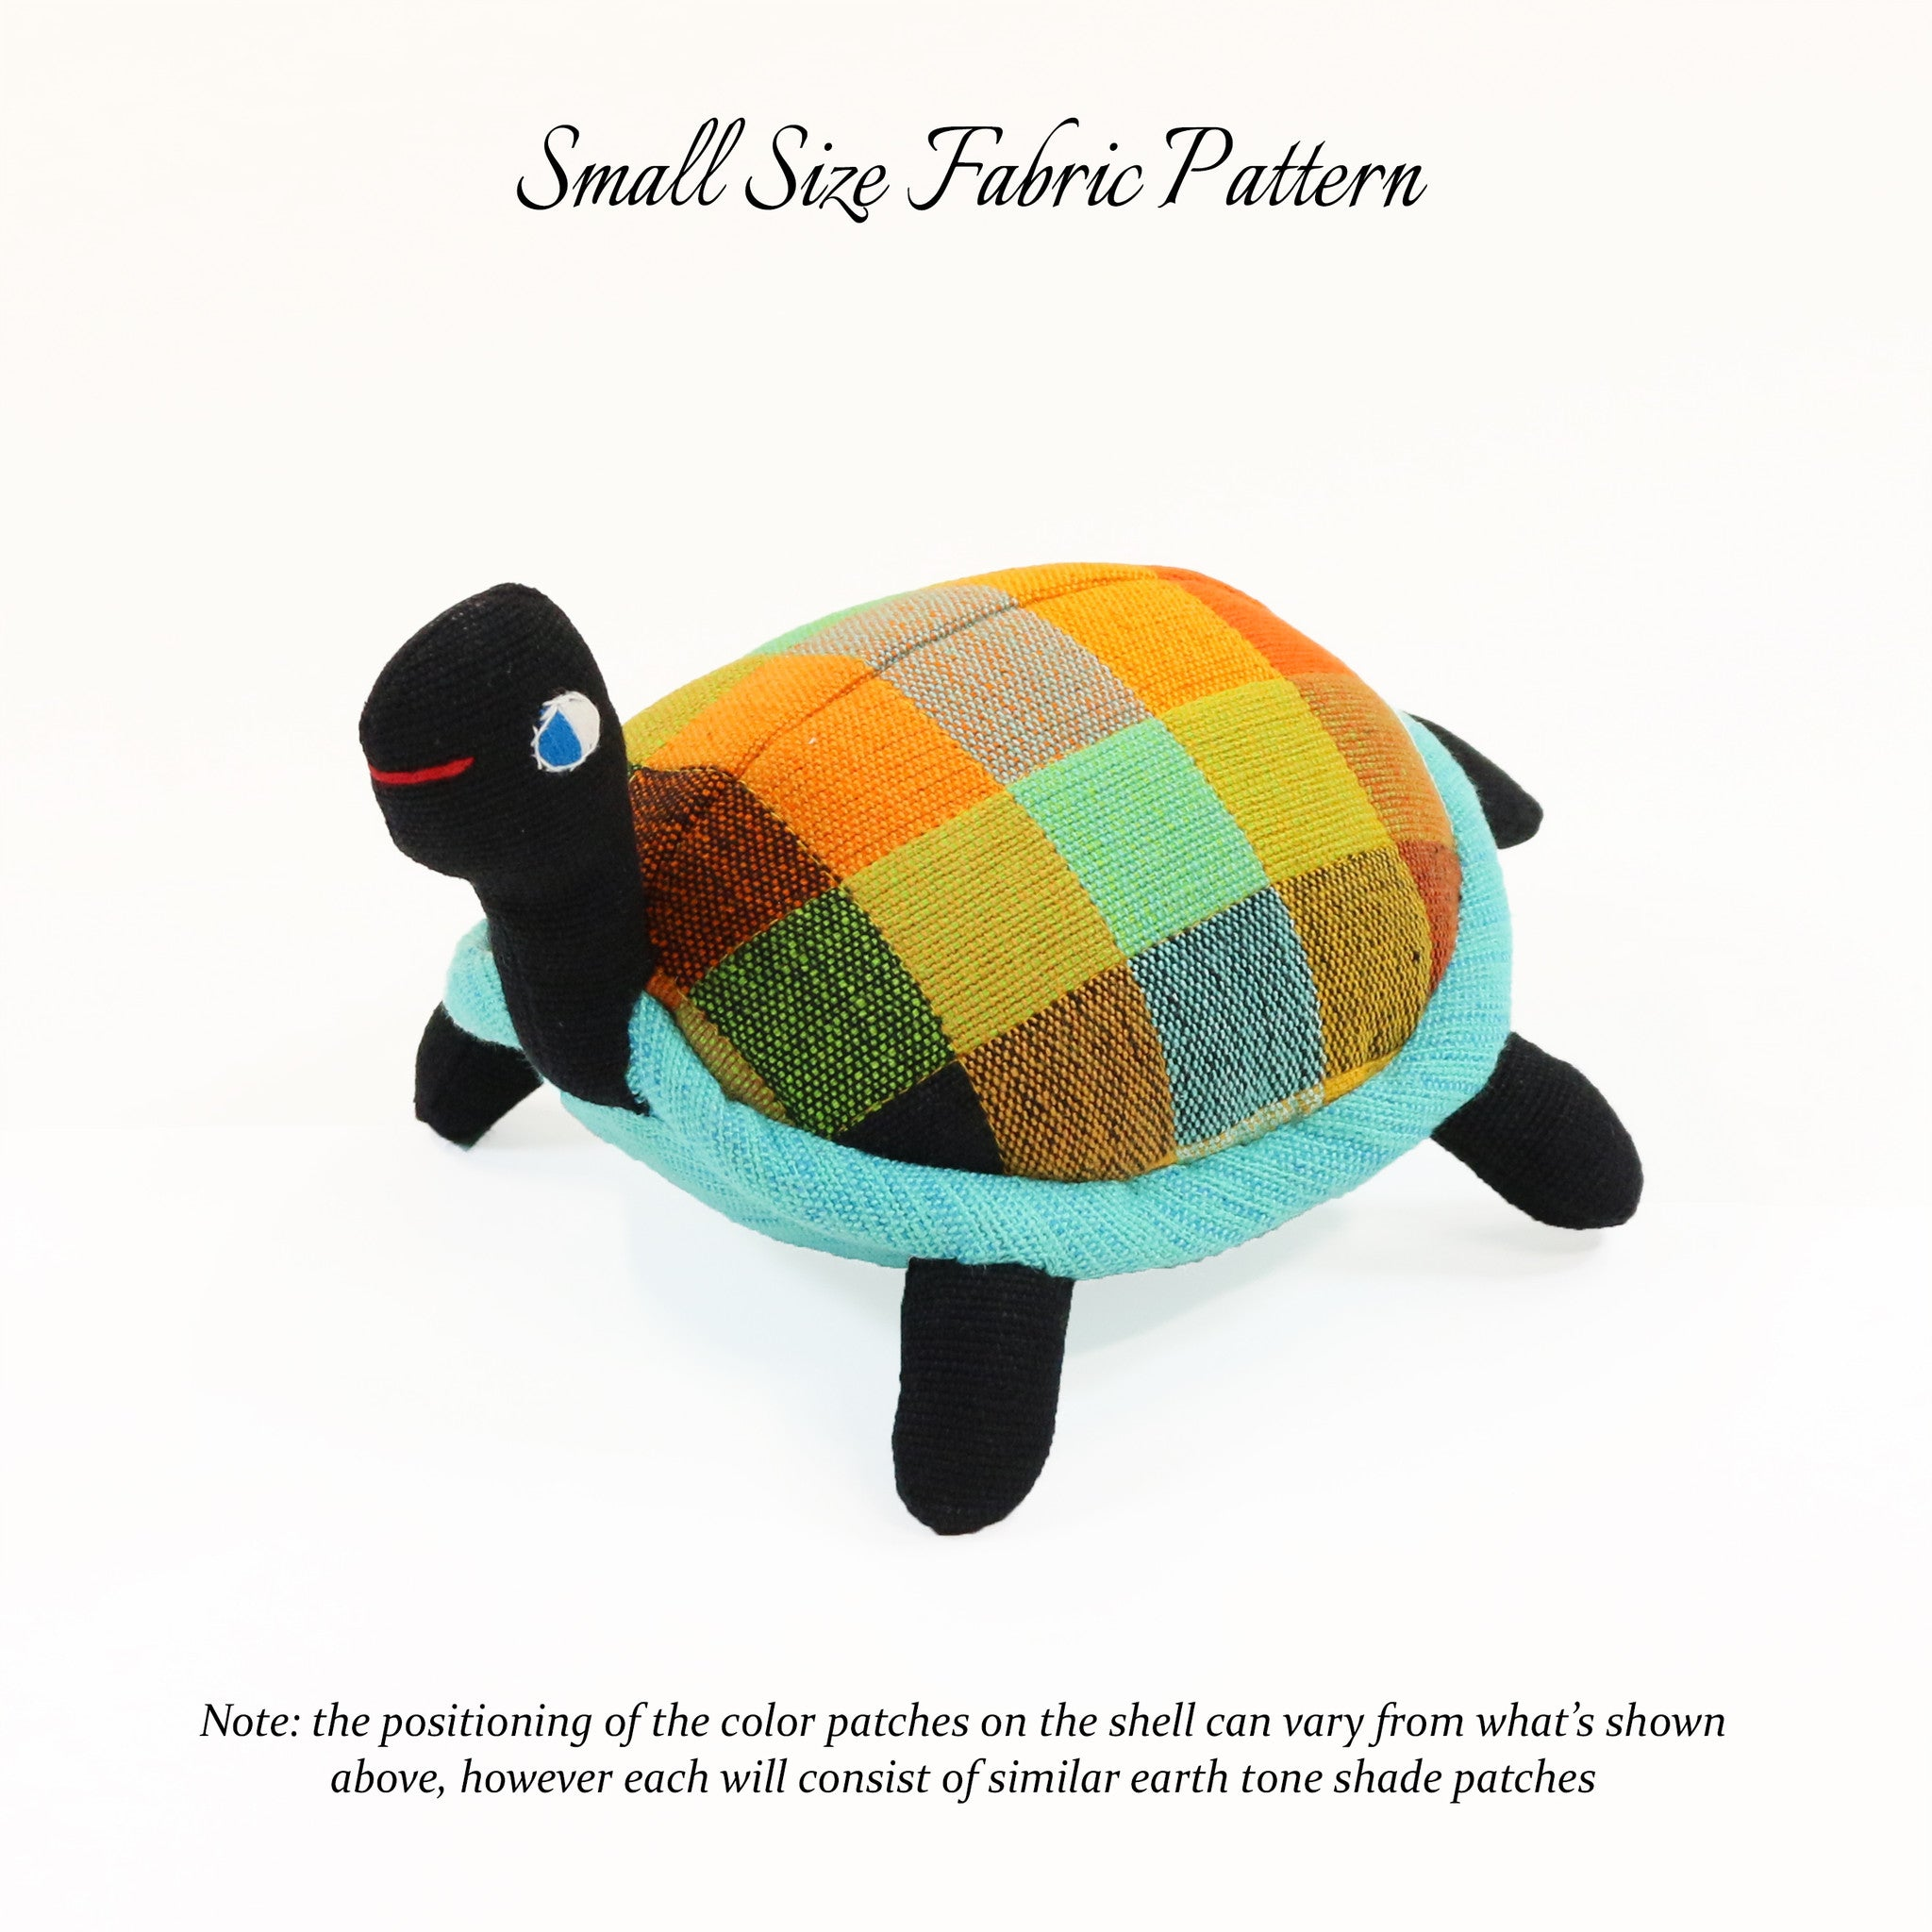 Toby, the Turtle – small size fabric pattern shown